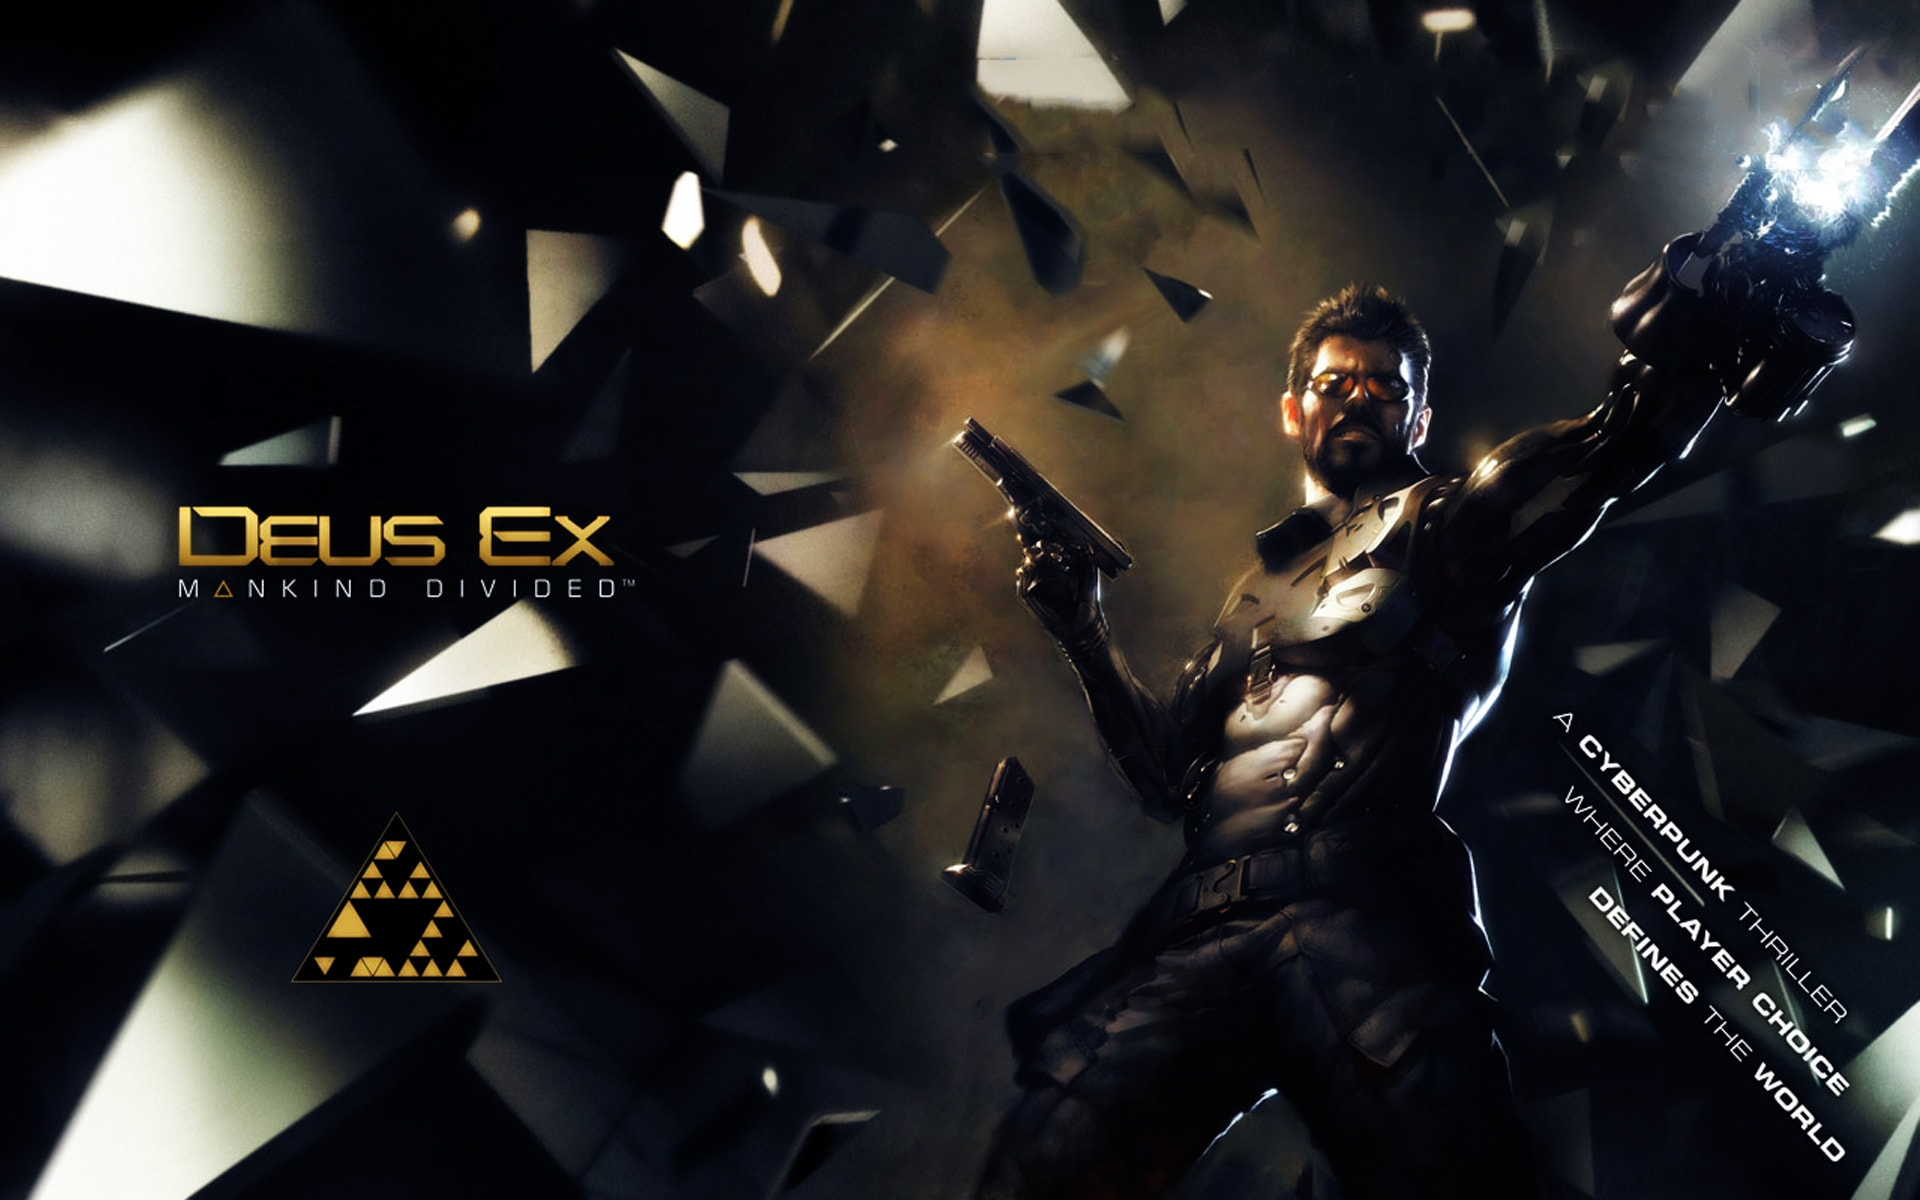 Deus Ex Mankind Divided Wallpapers hd